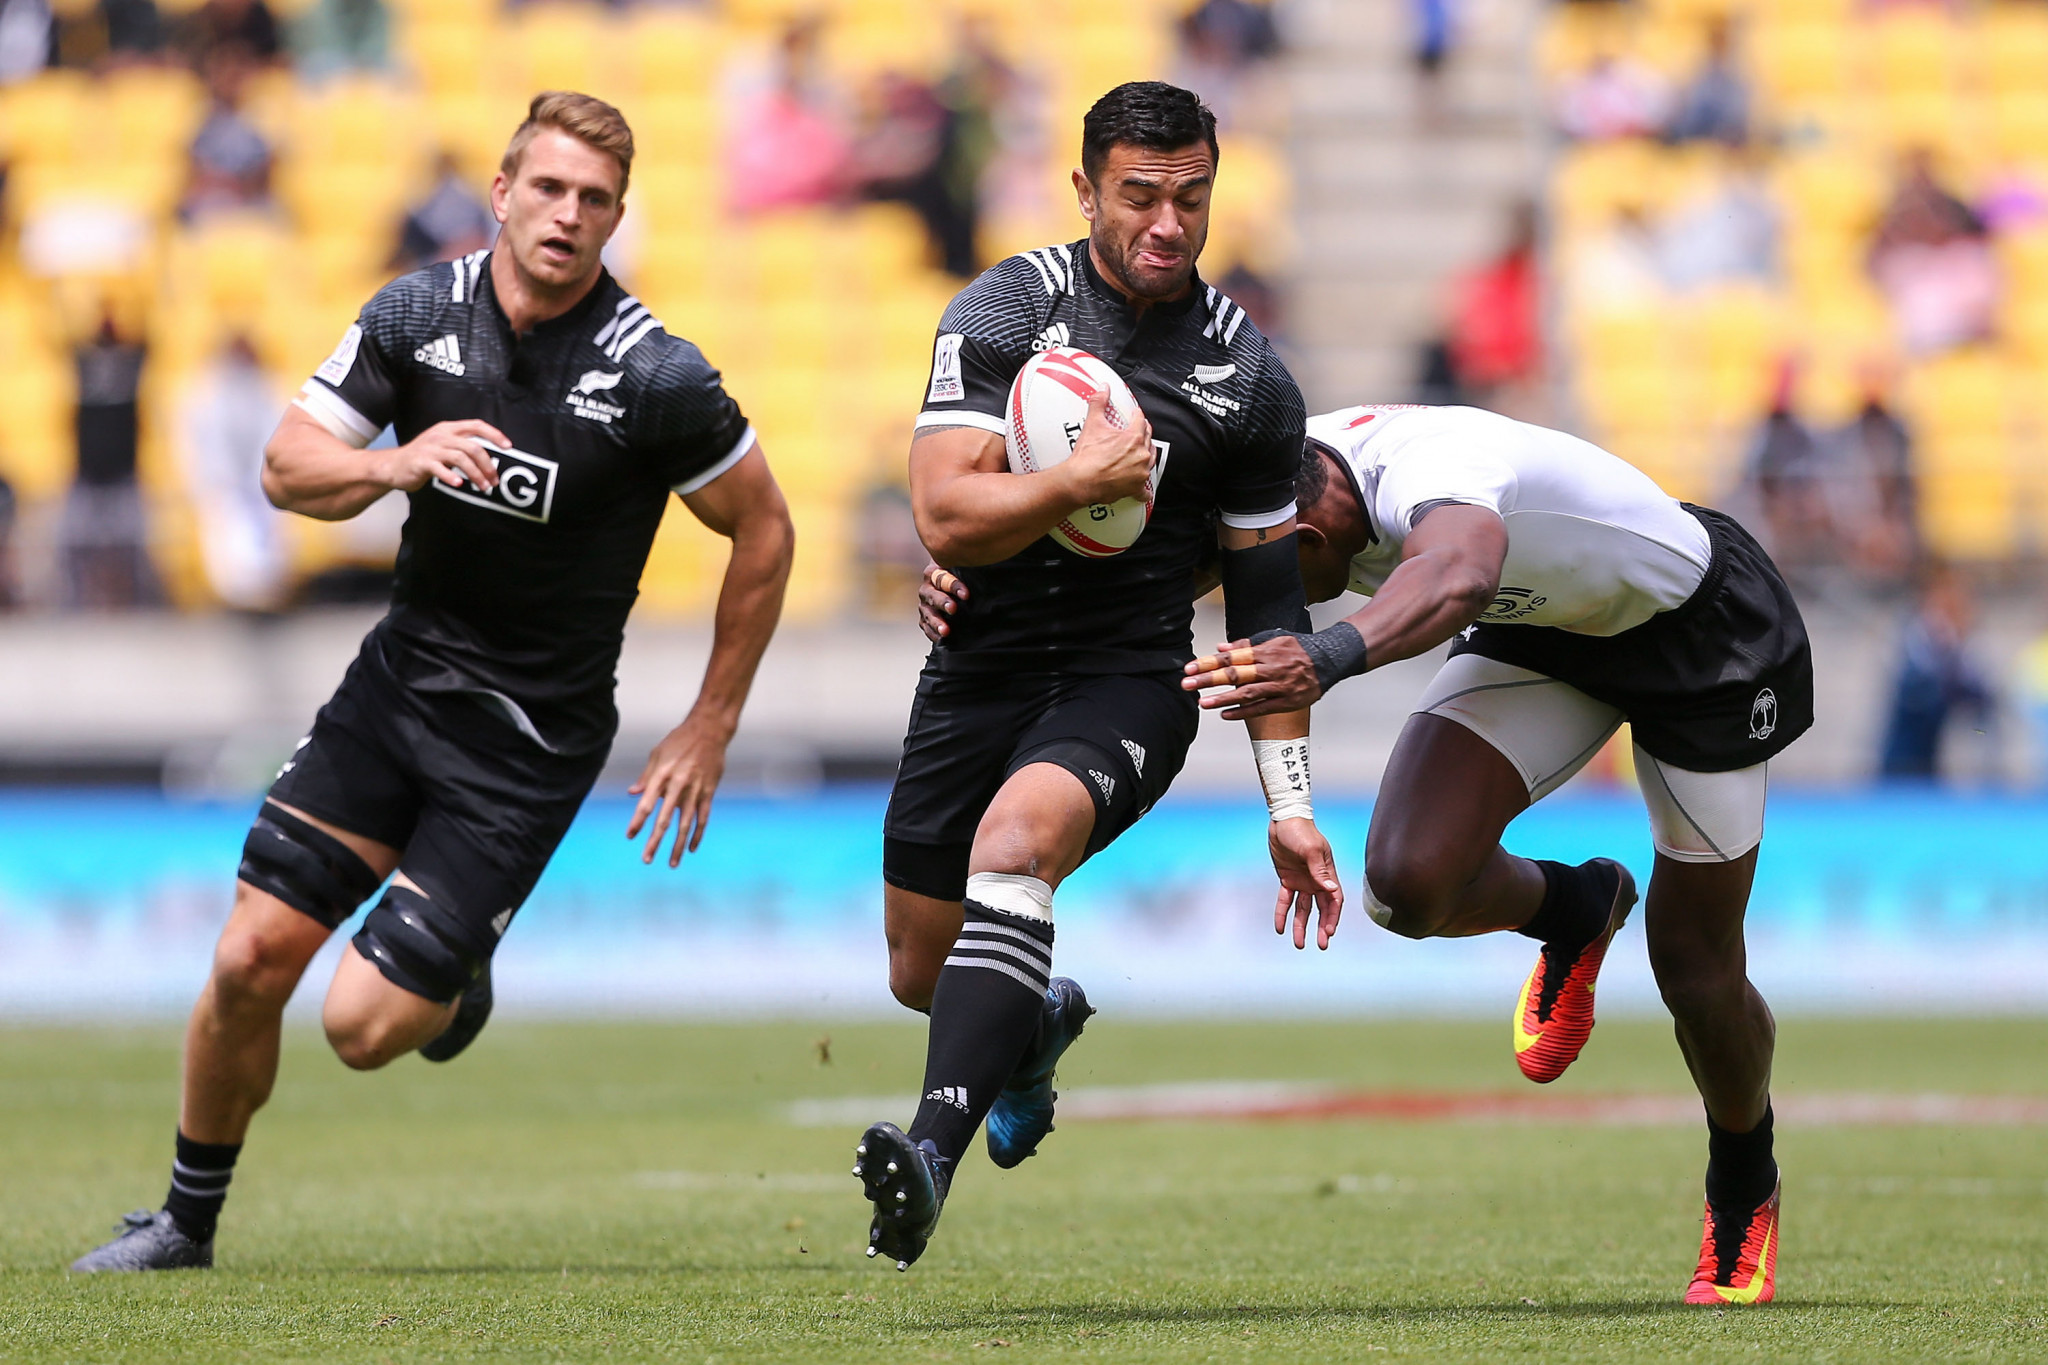 New Zealand win top prizes at World Rugby Sevens Series Awards